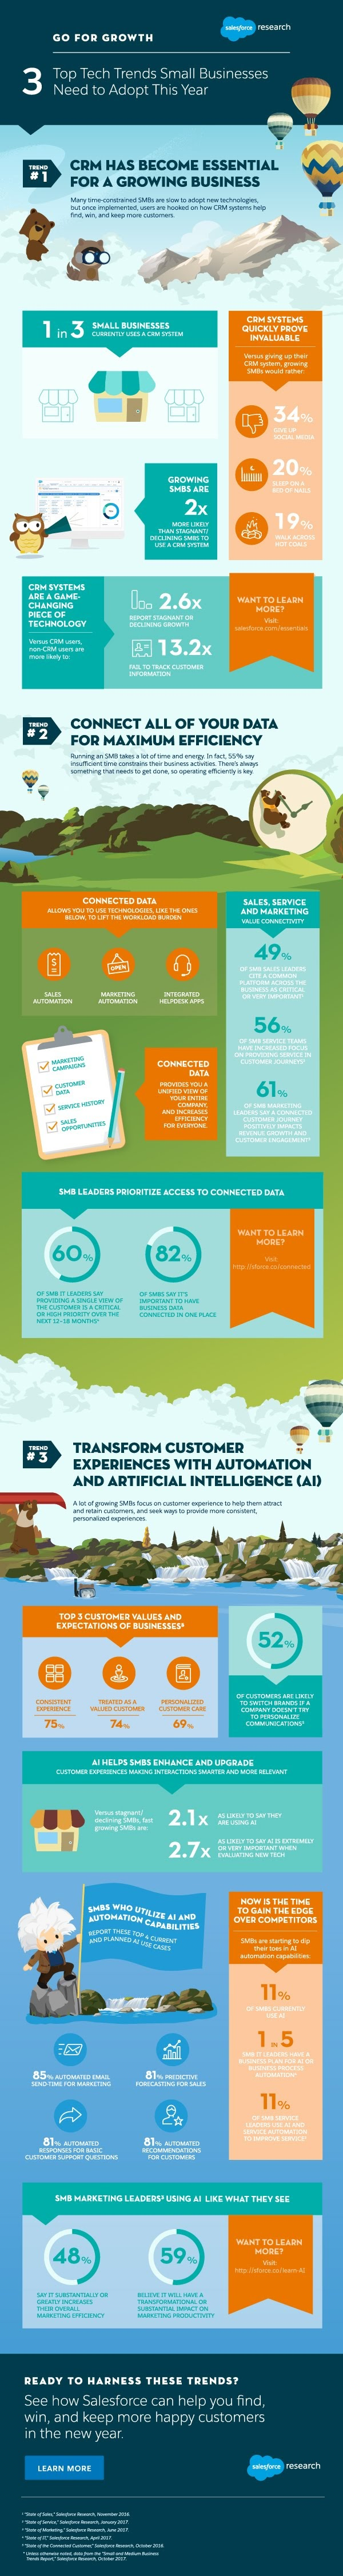 Technology Trends Shaping Small Businesses in 2018 - #infographic